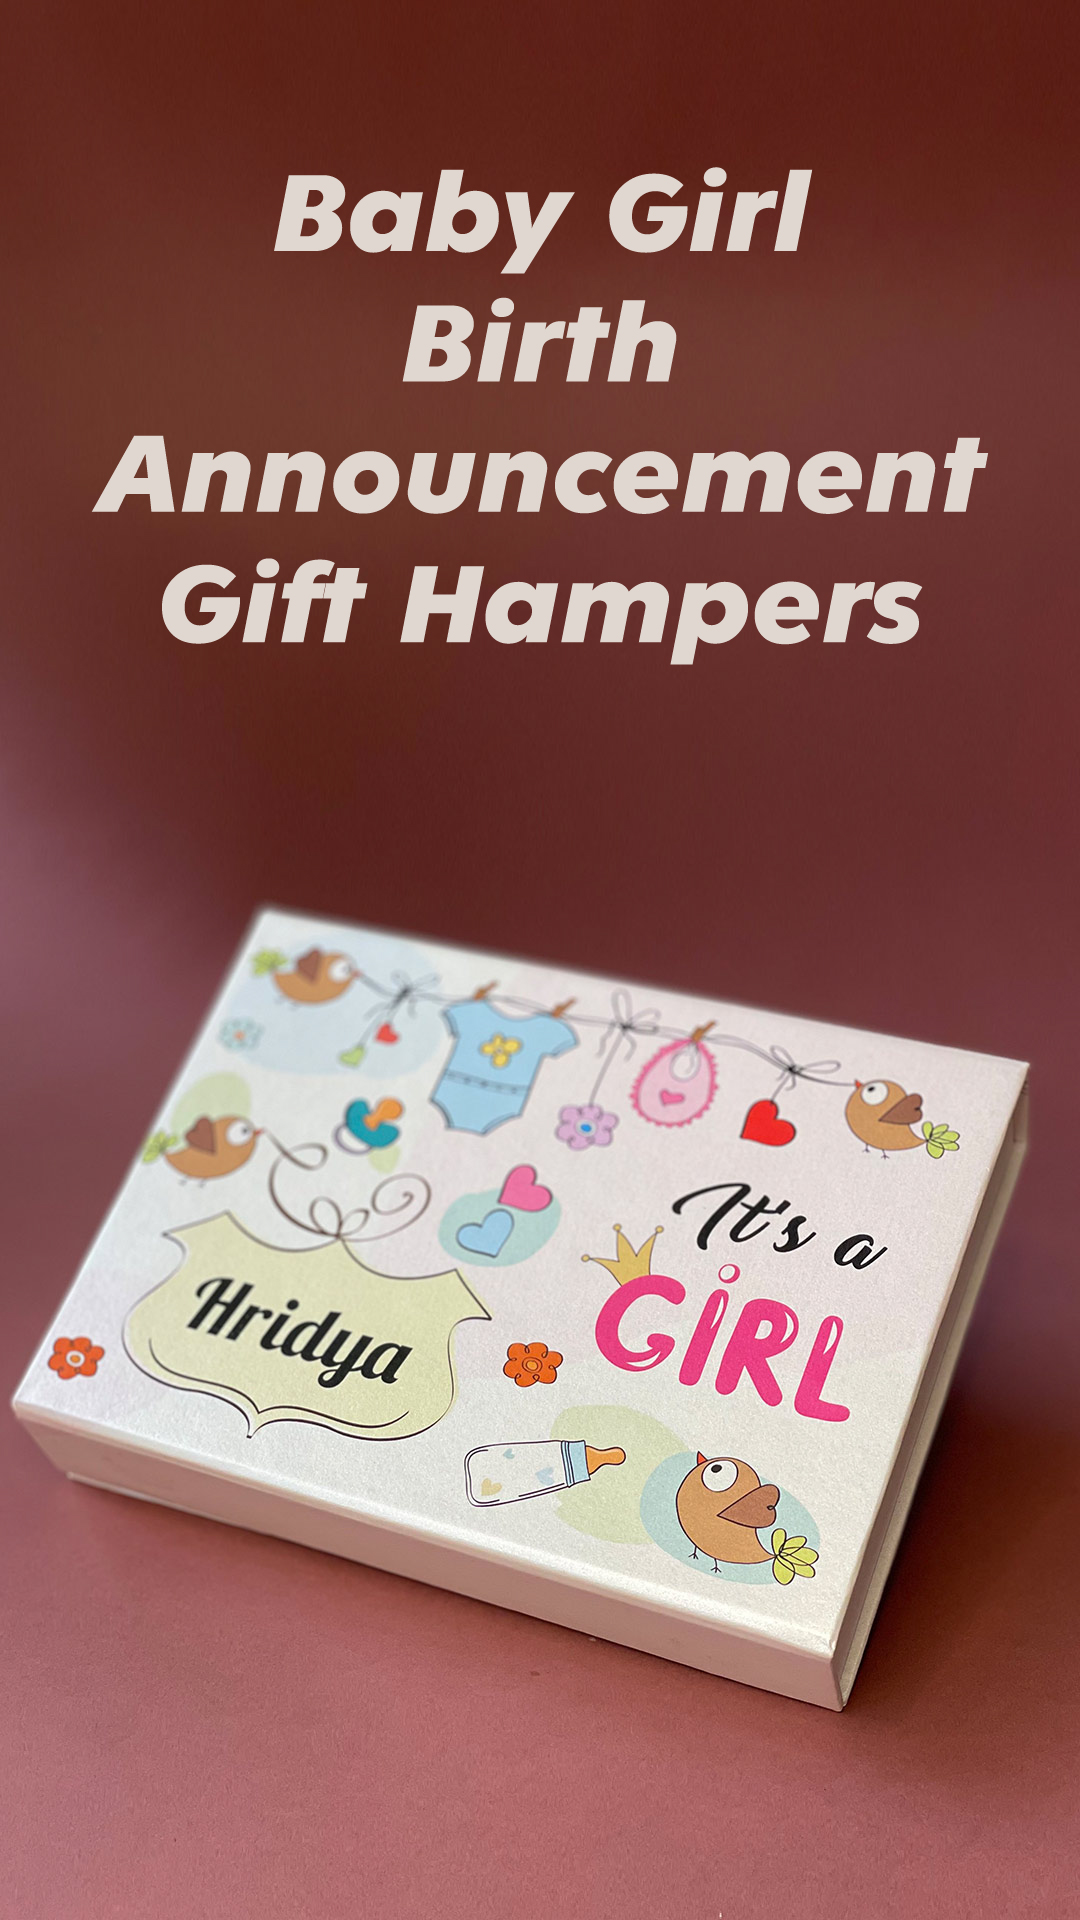 Baby Girl Birth announcement hamper boxes by chocovira in india